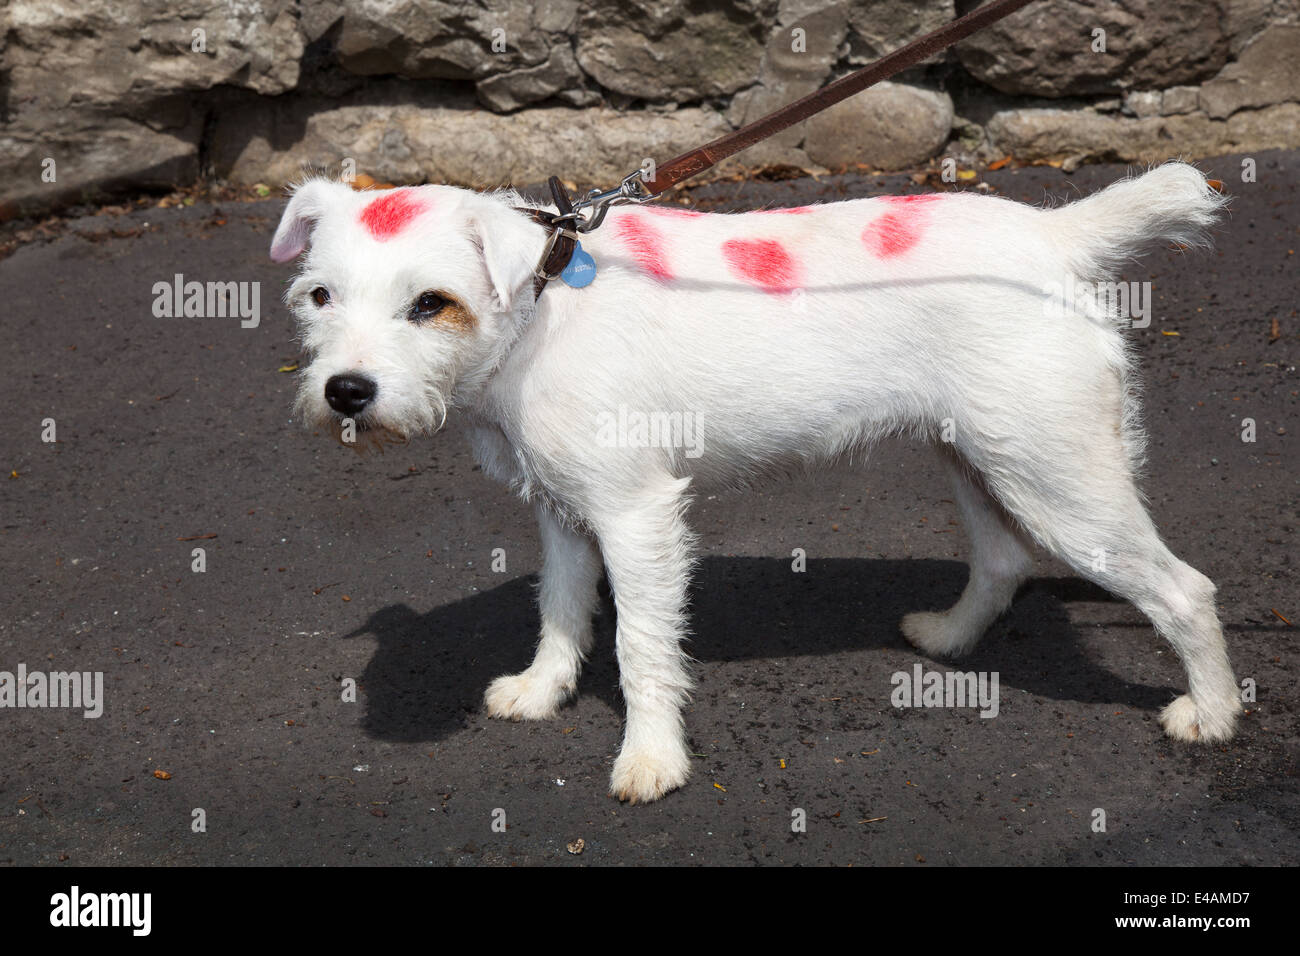 West Tanfield, Yorkshire, UK. 5th July, 2014. 'Parsons' a white terrier  dog, dyed and painted with red - Stock Image